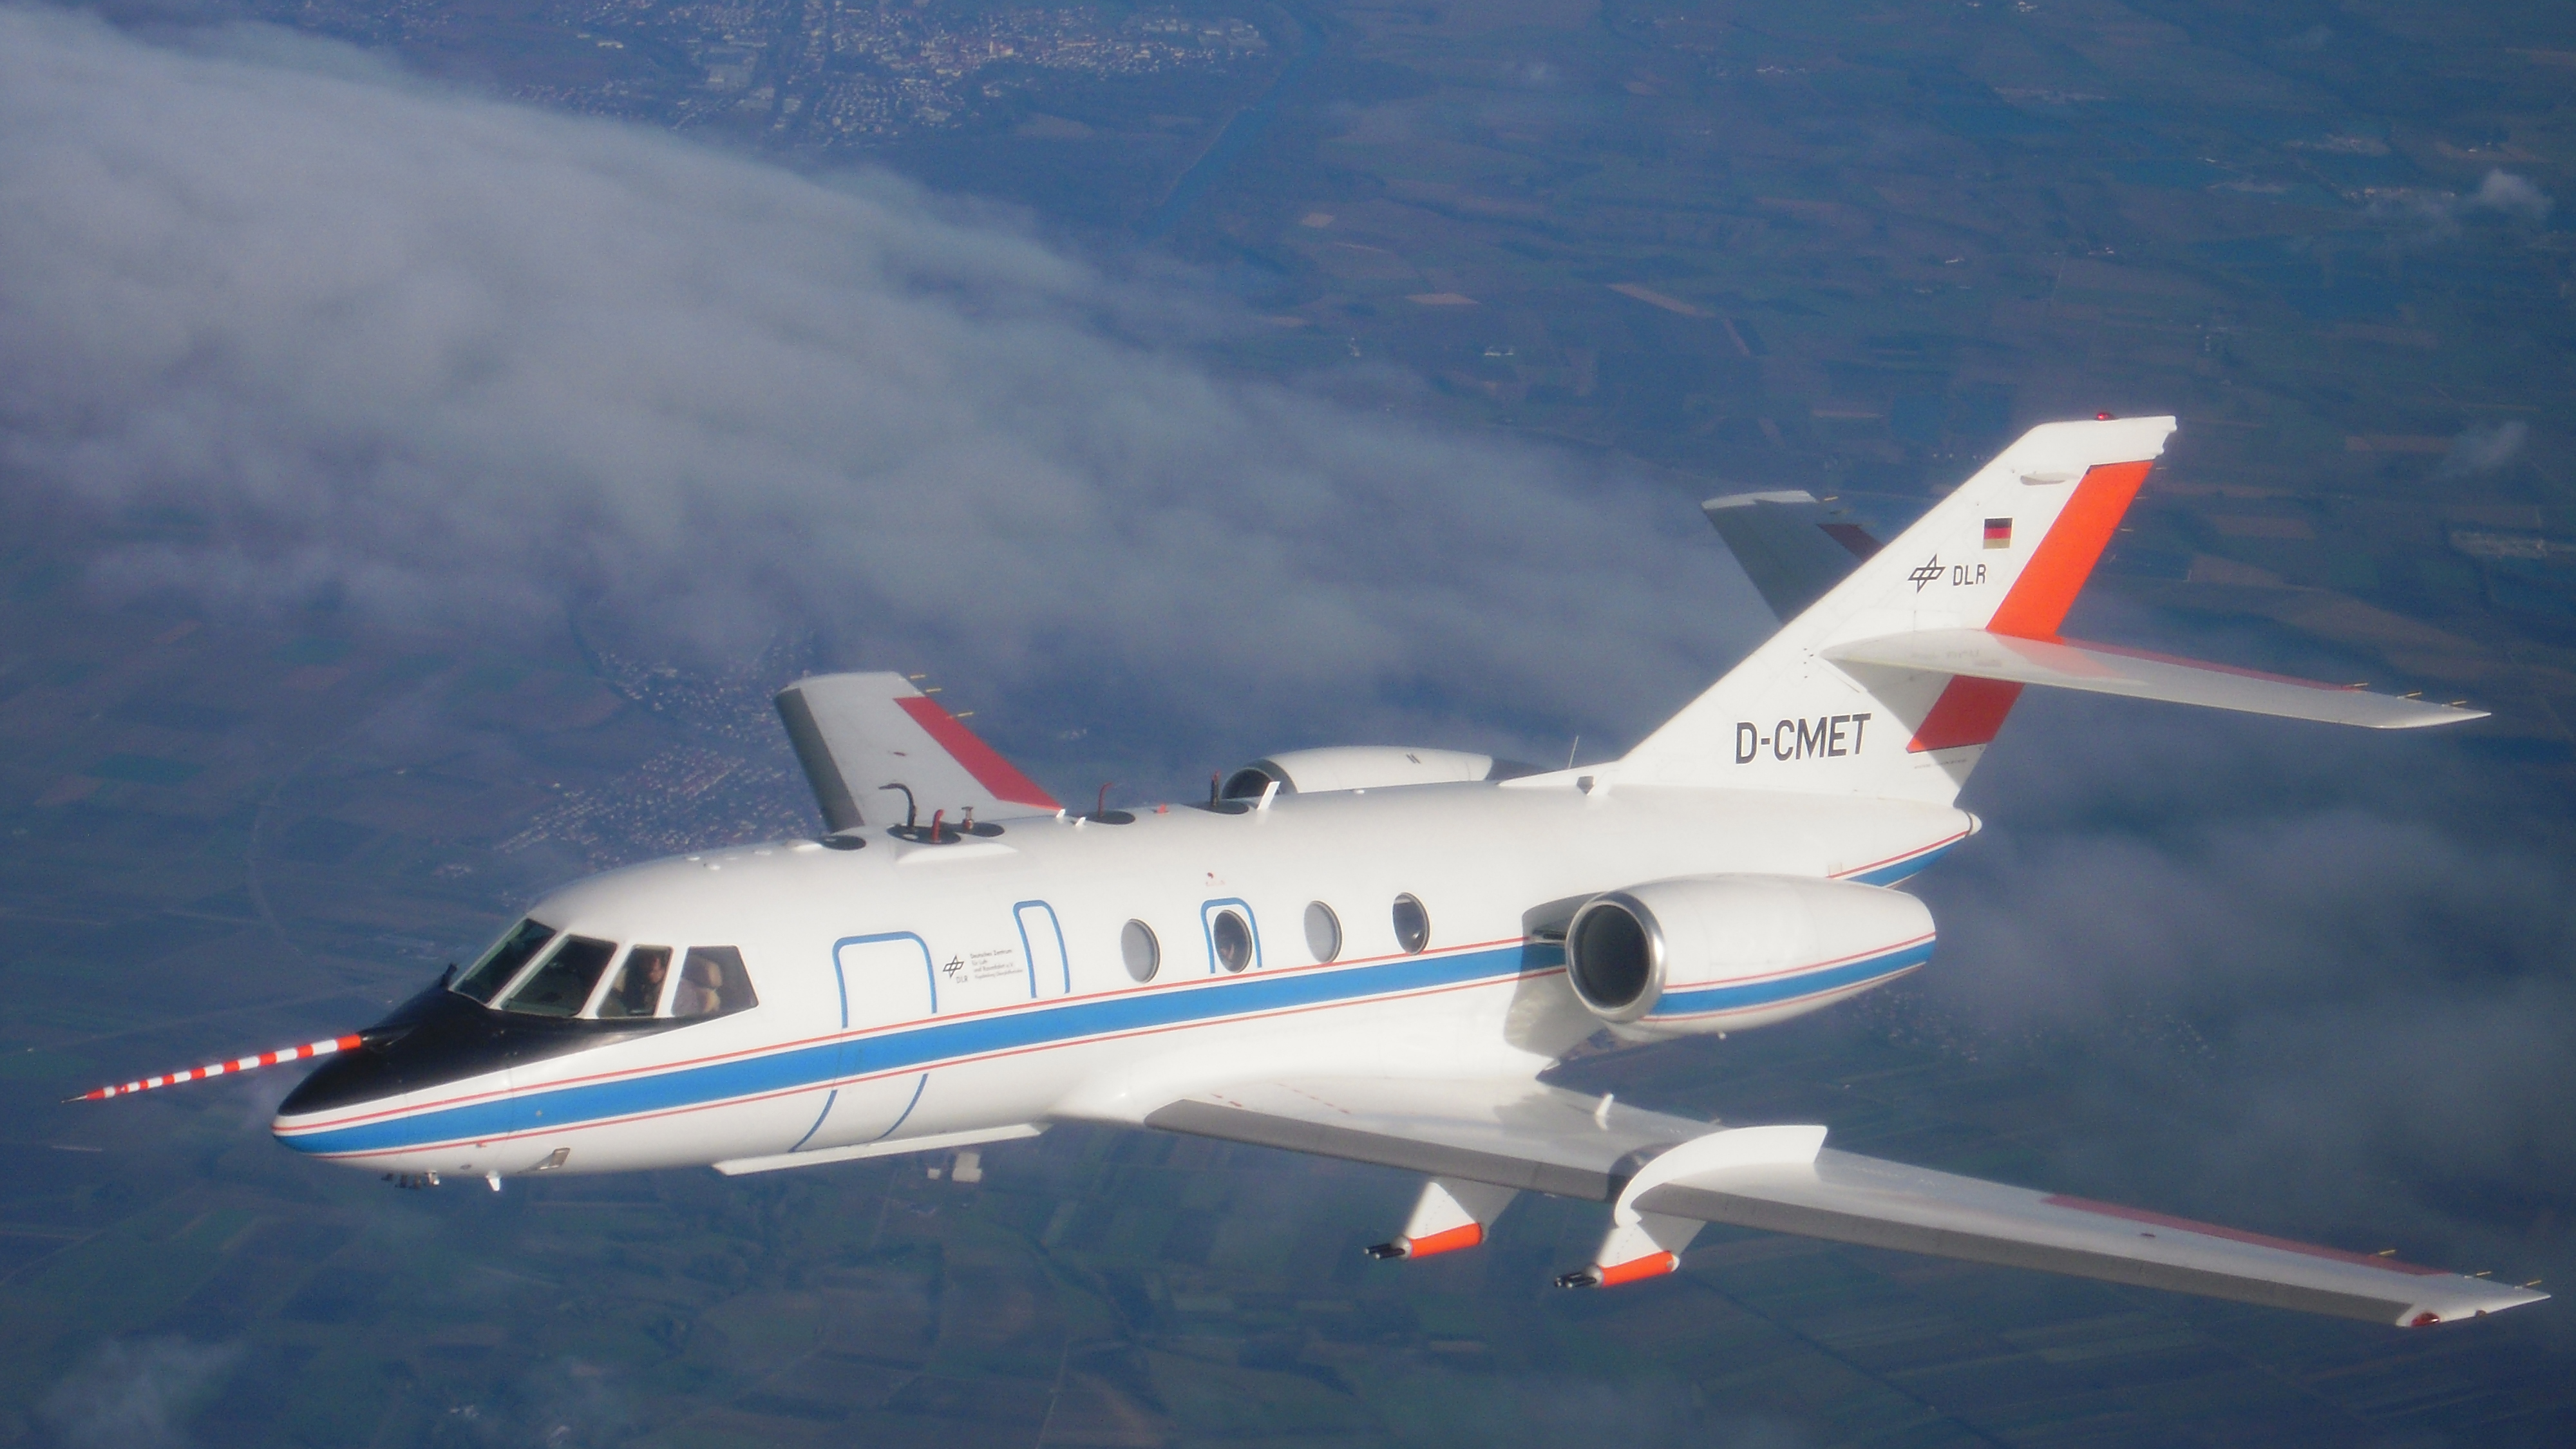 Image gallery: Research aircraft - DLR Portal